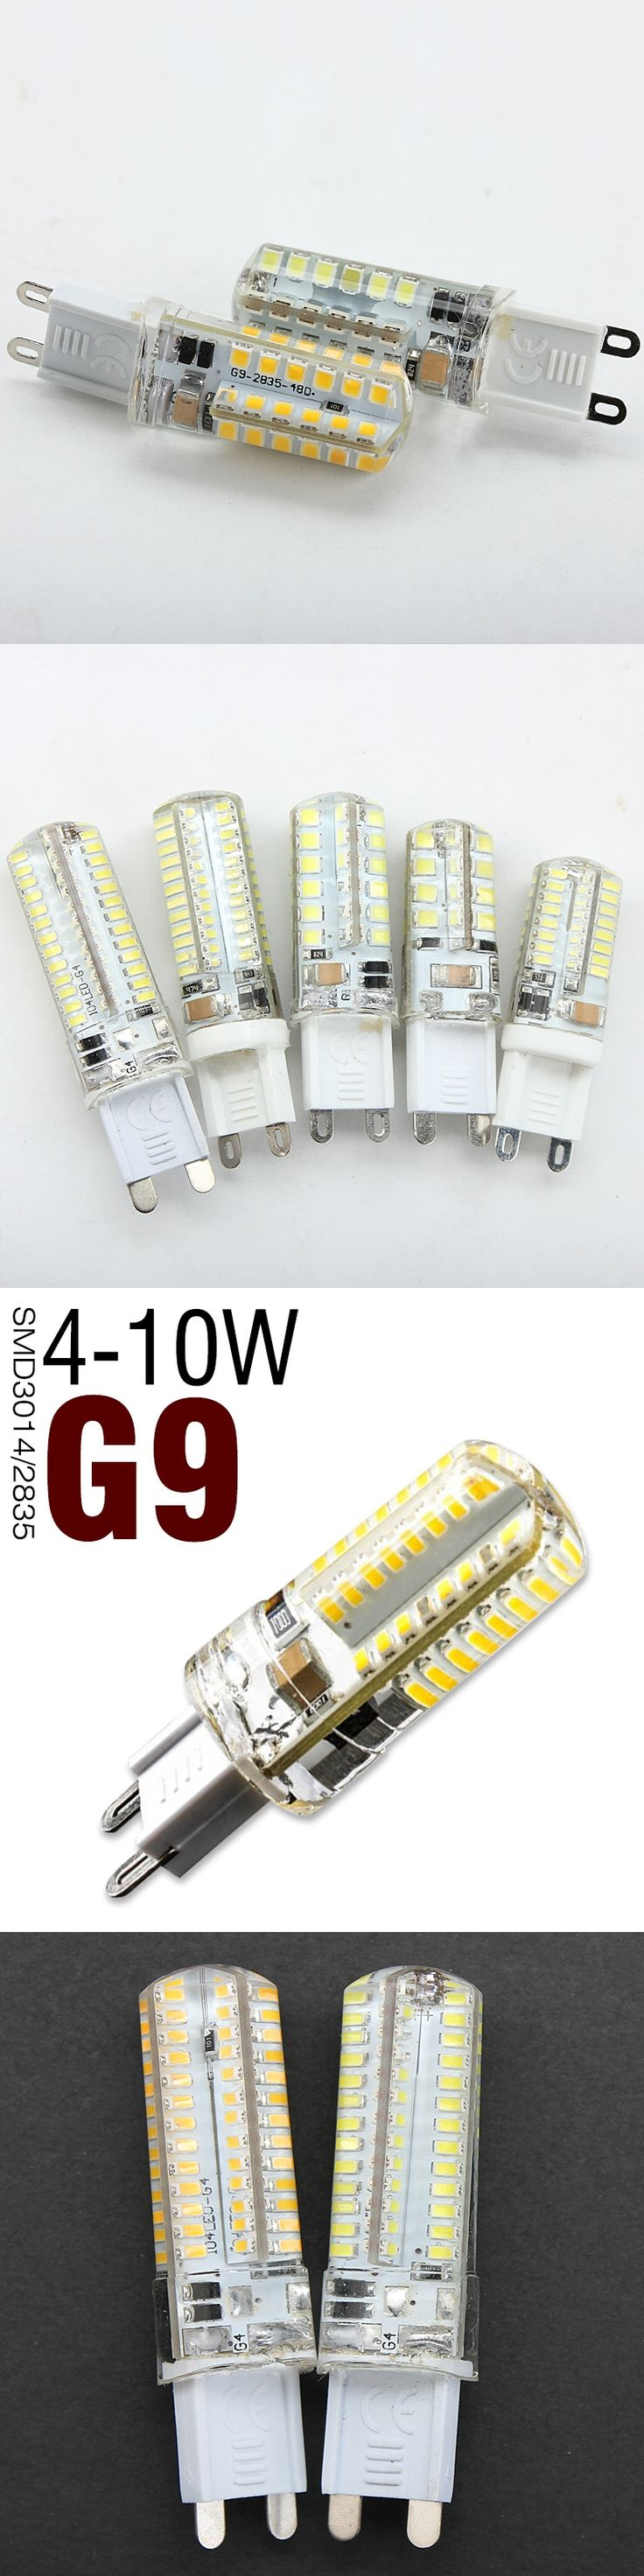 G9 LED Corn Bulb 32LEDs 48LEDs 64LEDs 96LEDs 104LEDs 220V SMD3014 LED Lamp Warm/Cold White Silicone Light Bulbs G9 LEDs Lighting